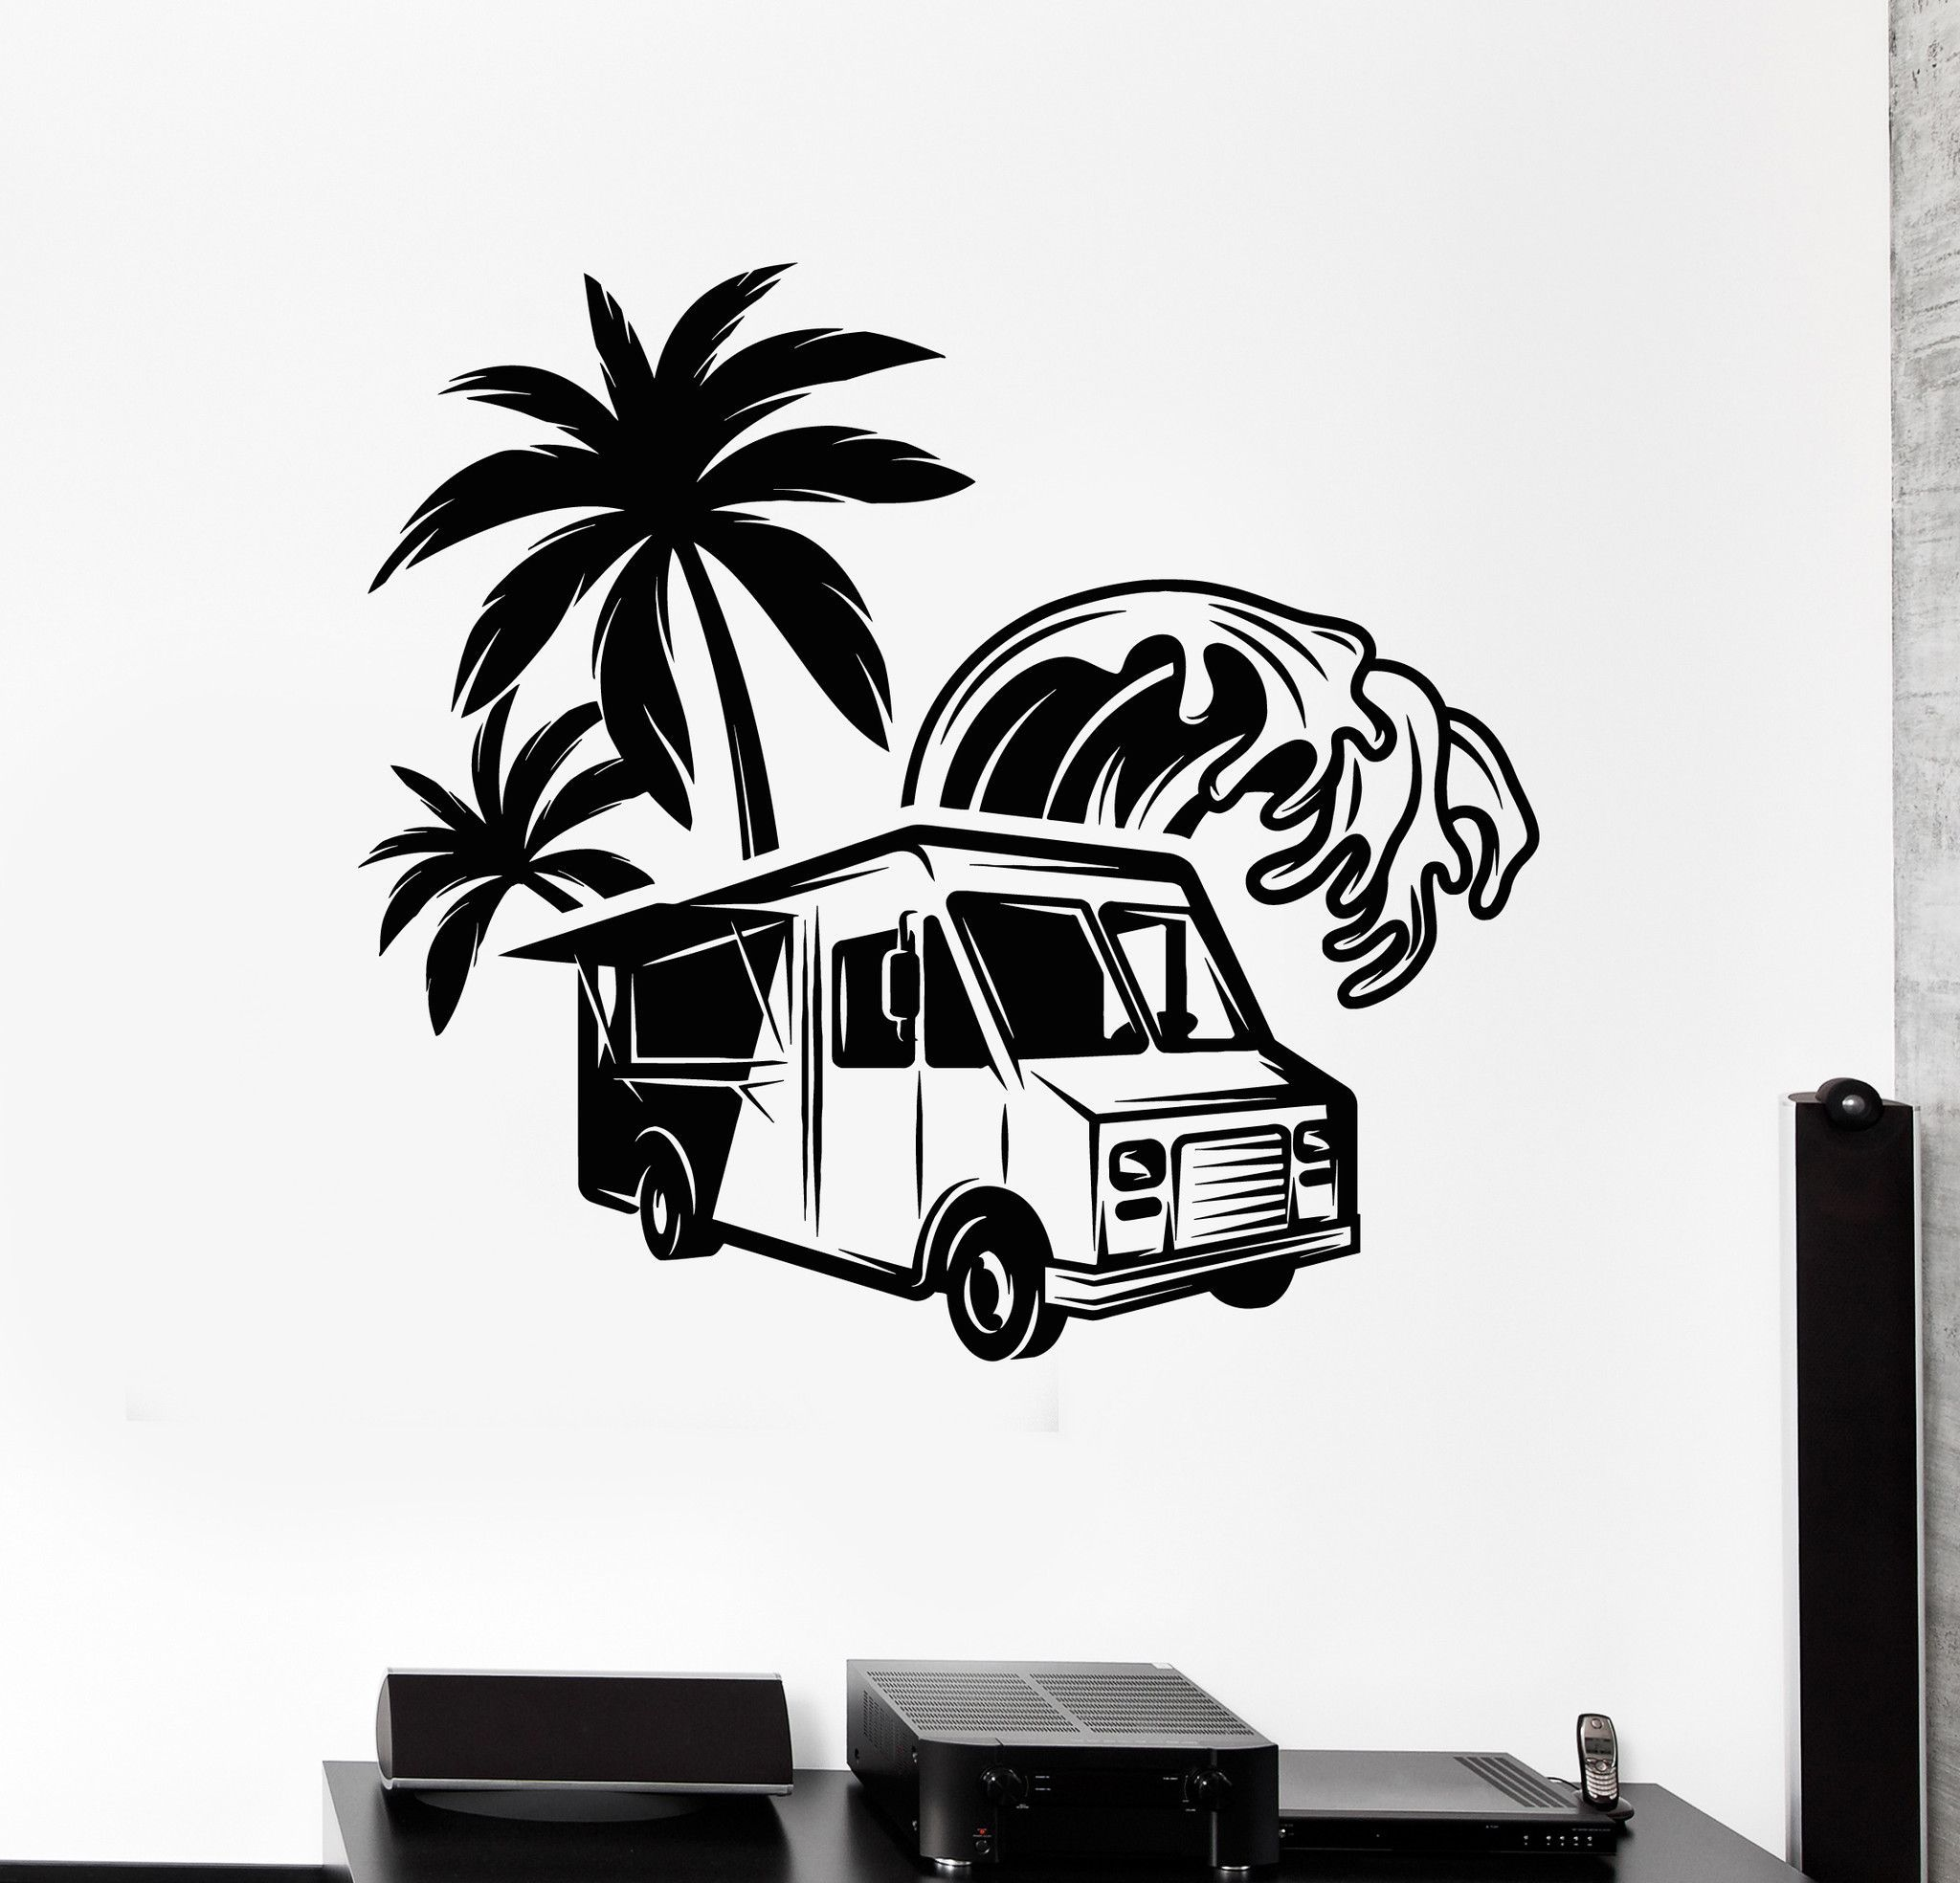 2048x1968 Vinyl Wall Decal Food Truck Palm Wave Fast Food Stickers Unique